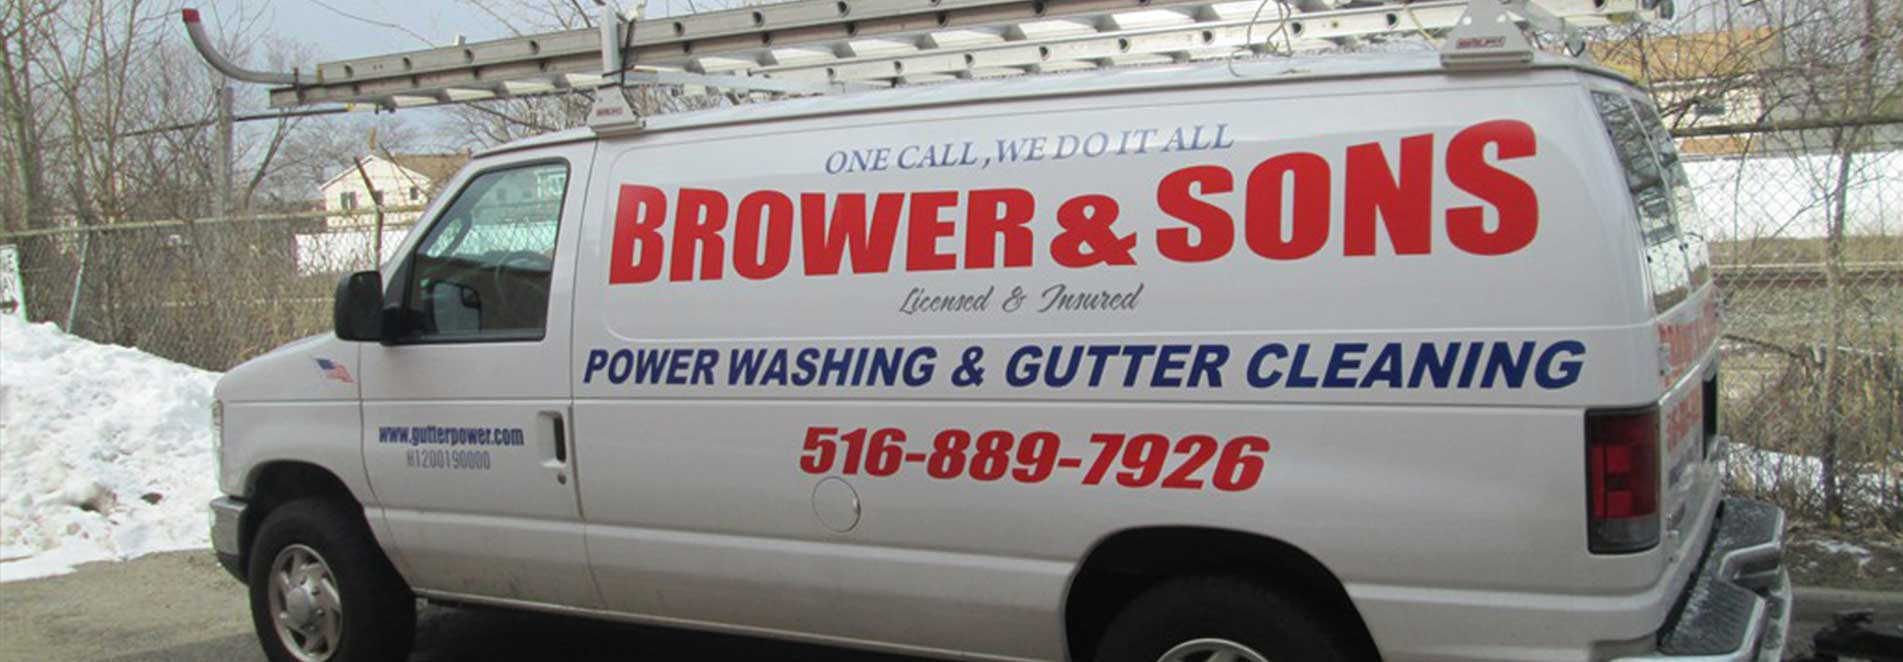 Brower & Sons truck